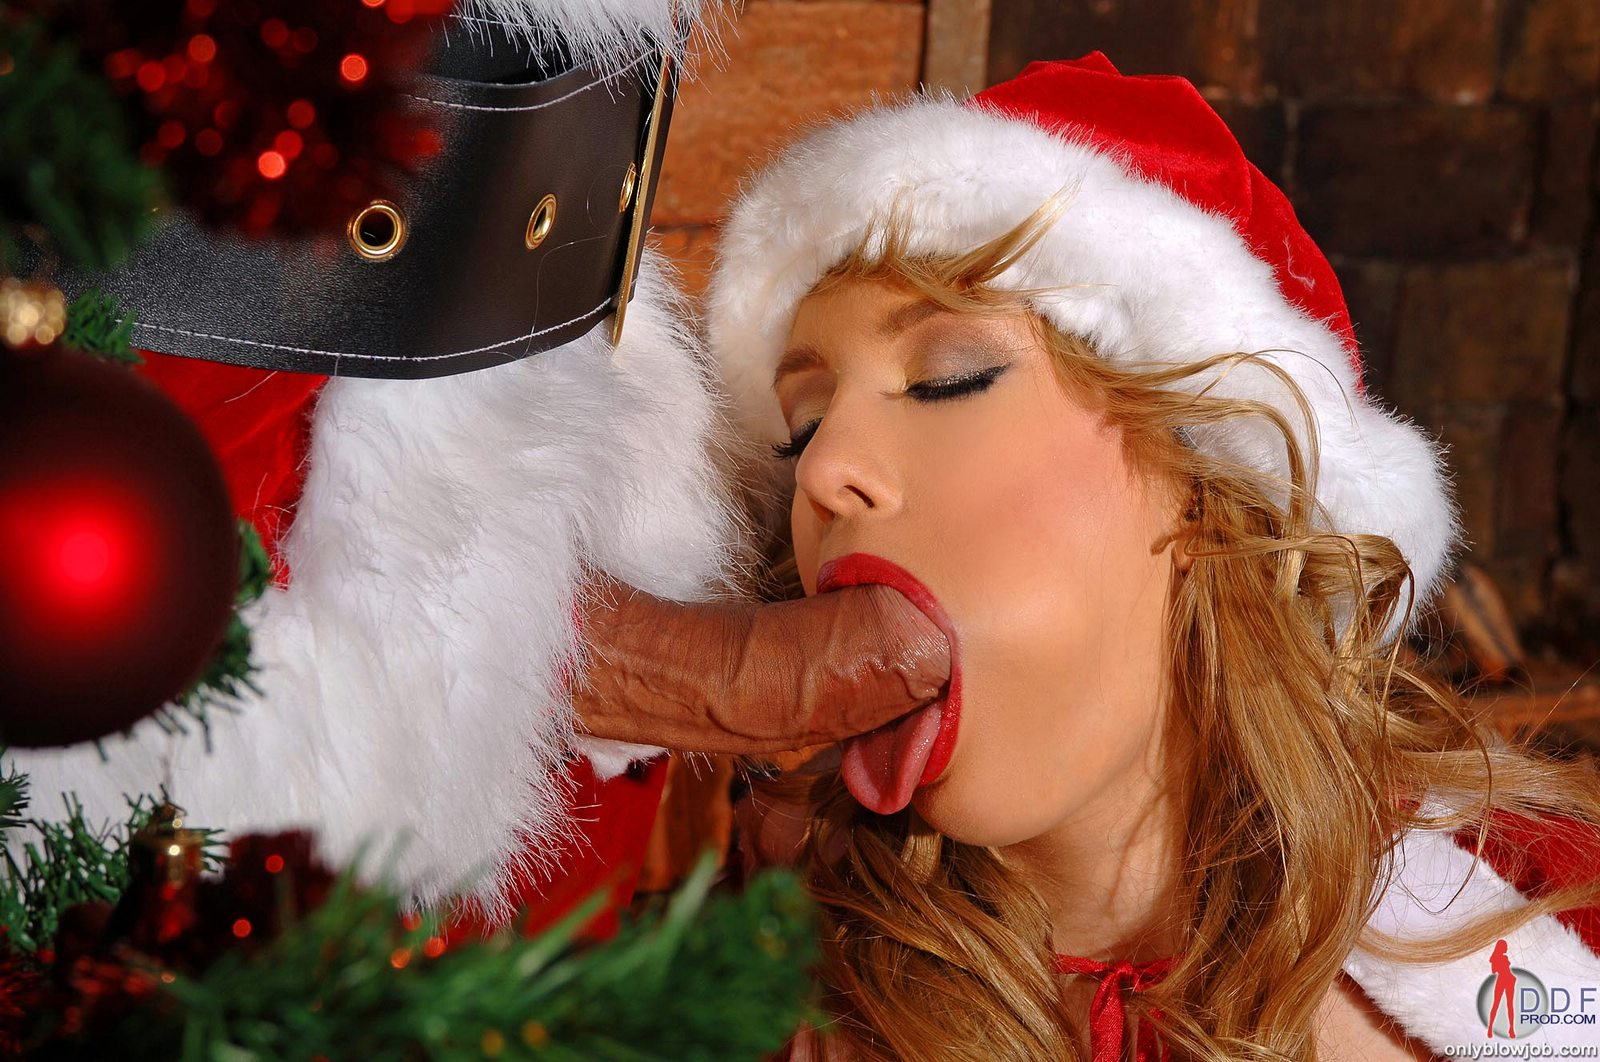 Ho ho homg santas little helper gives santa a present he wont soon forget